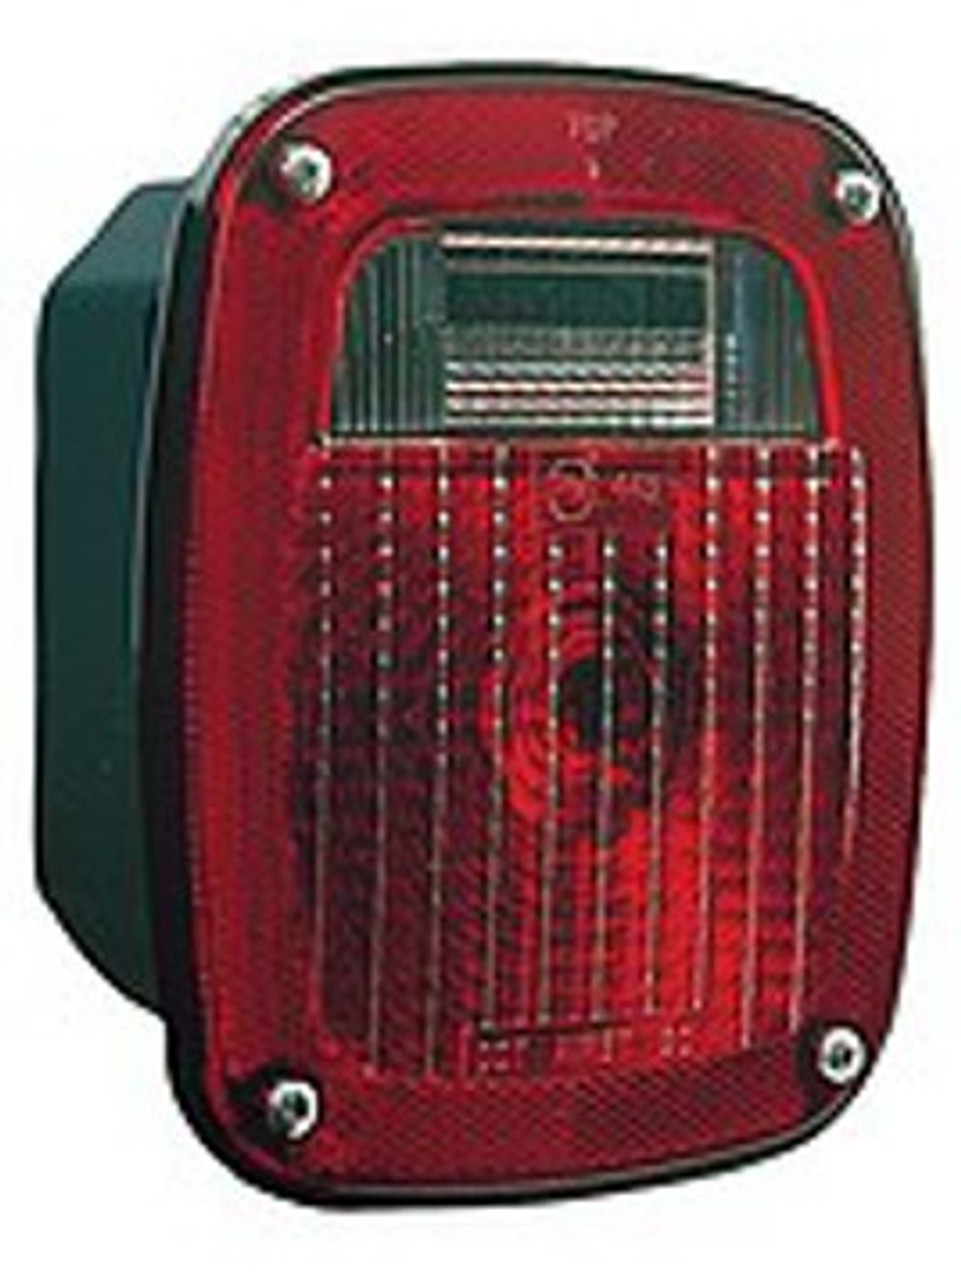 445 --- Combination Vehicle Tail Light